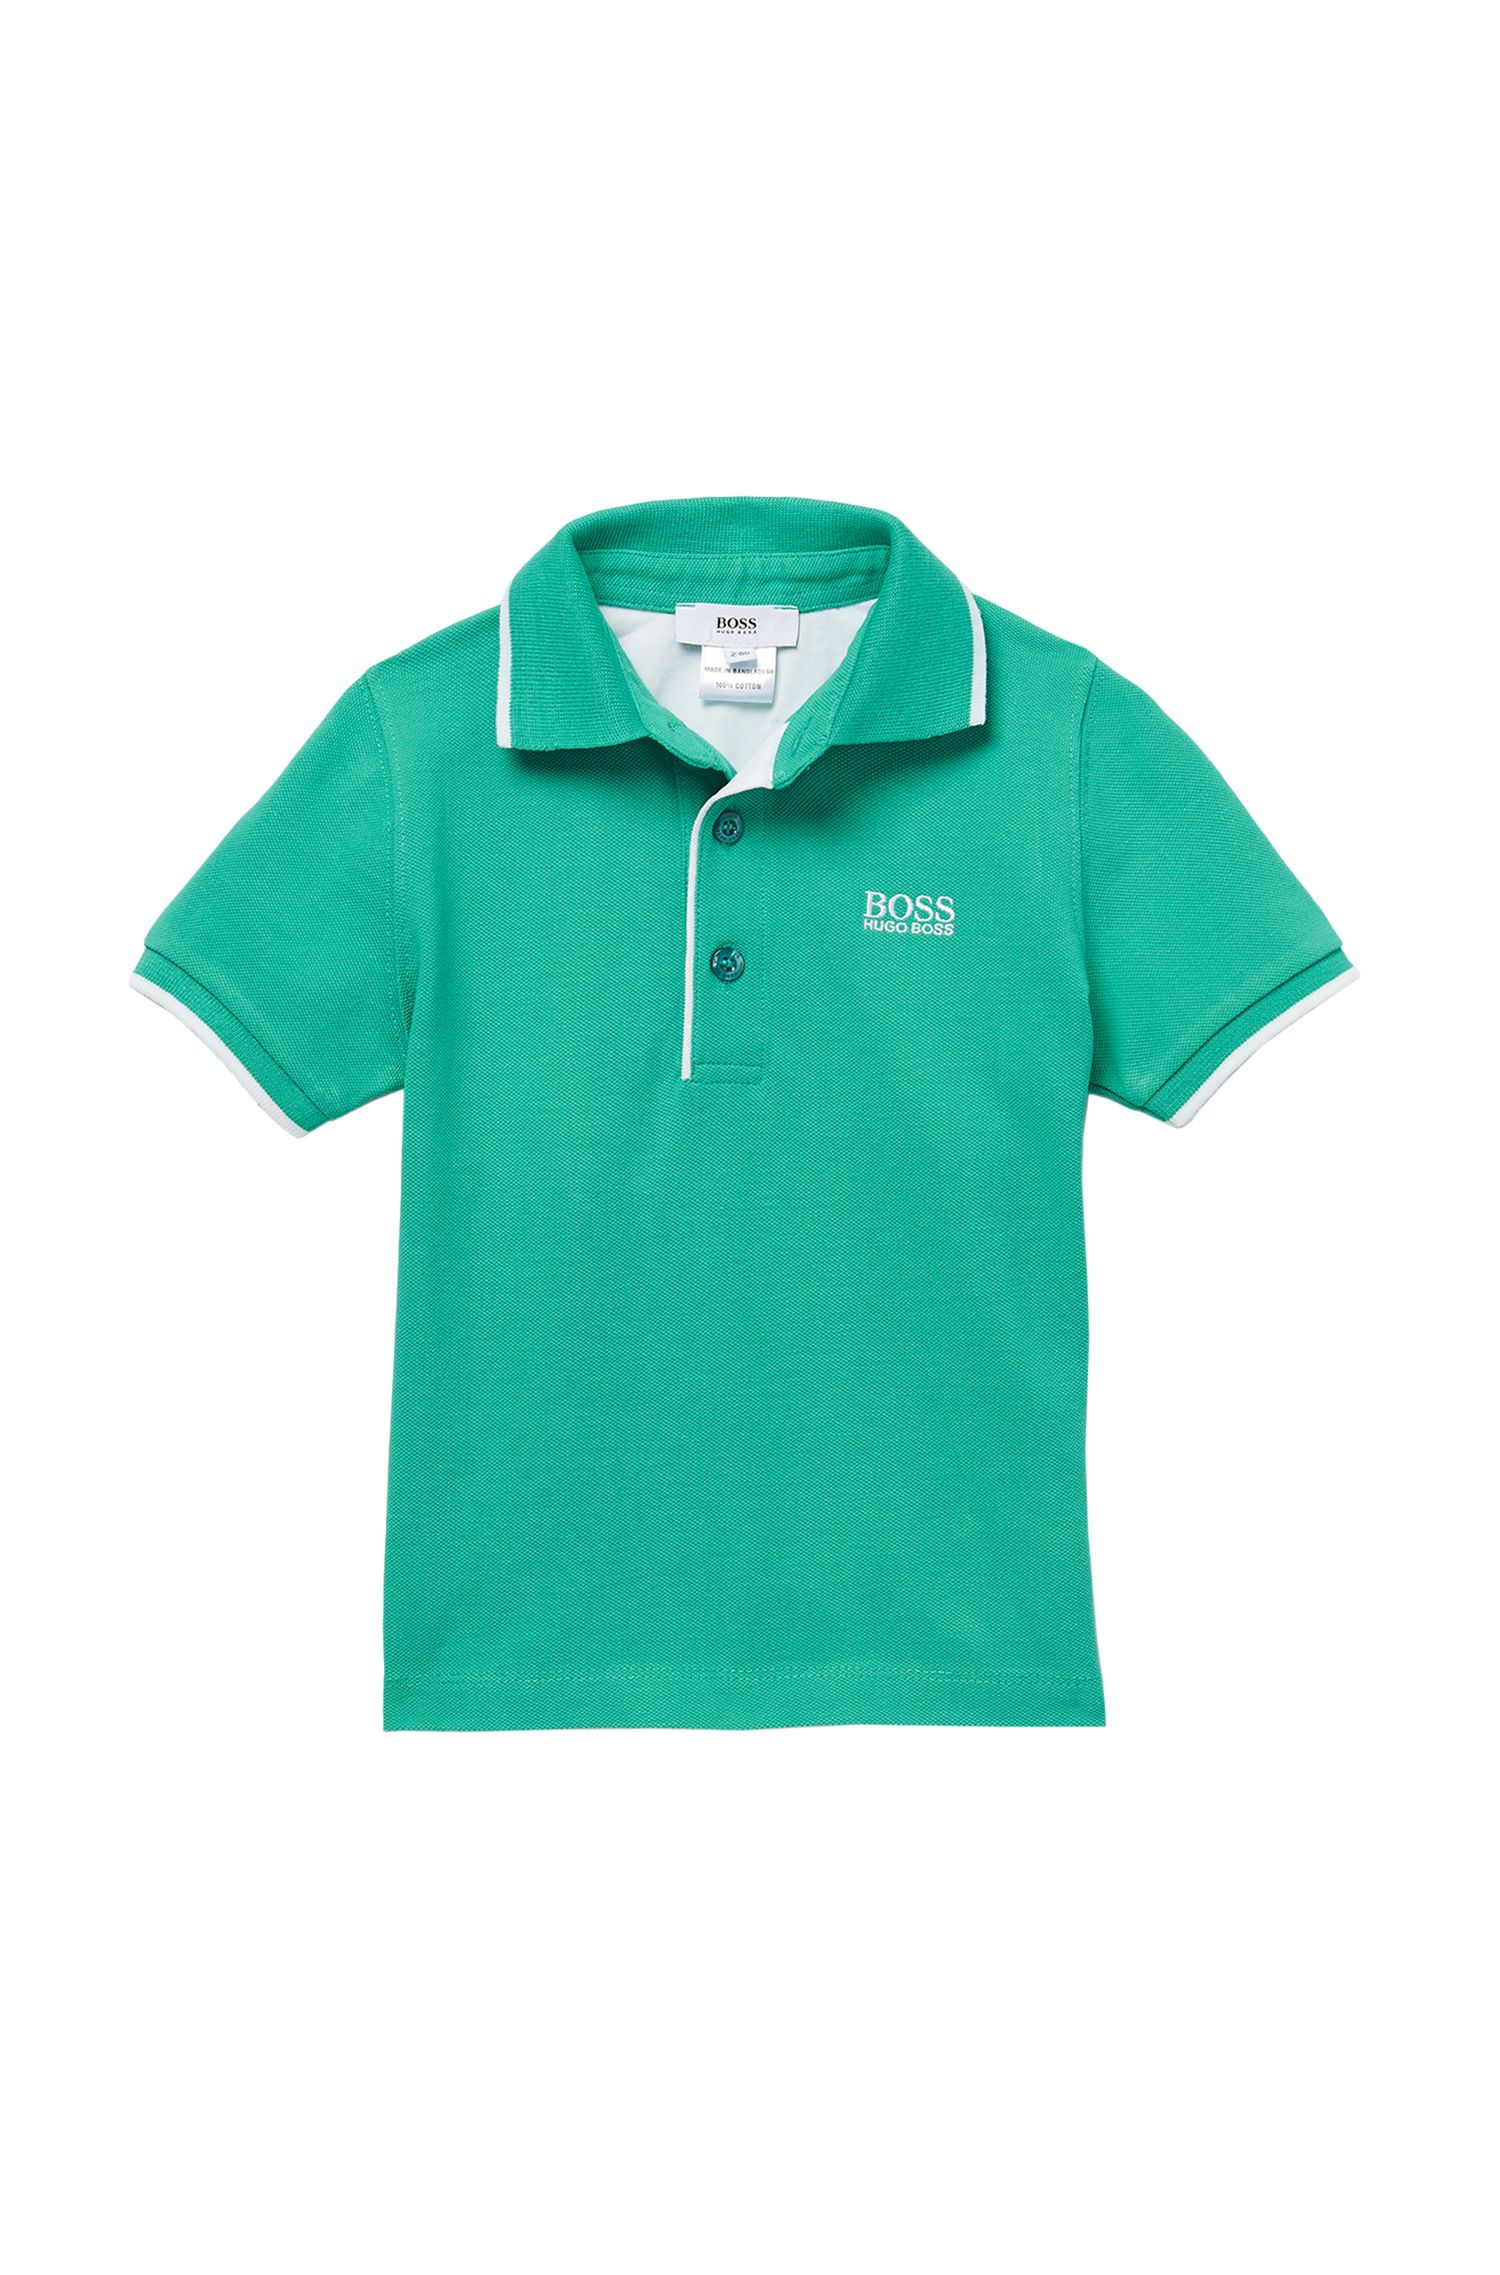 'J05305' | Toddler Cotton Piqué Polo Shirt